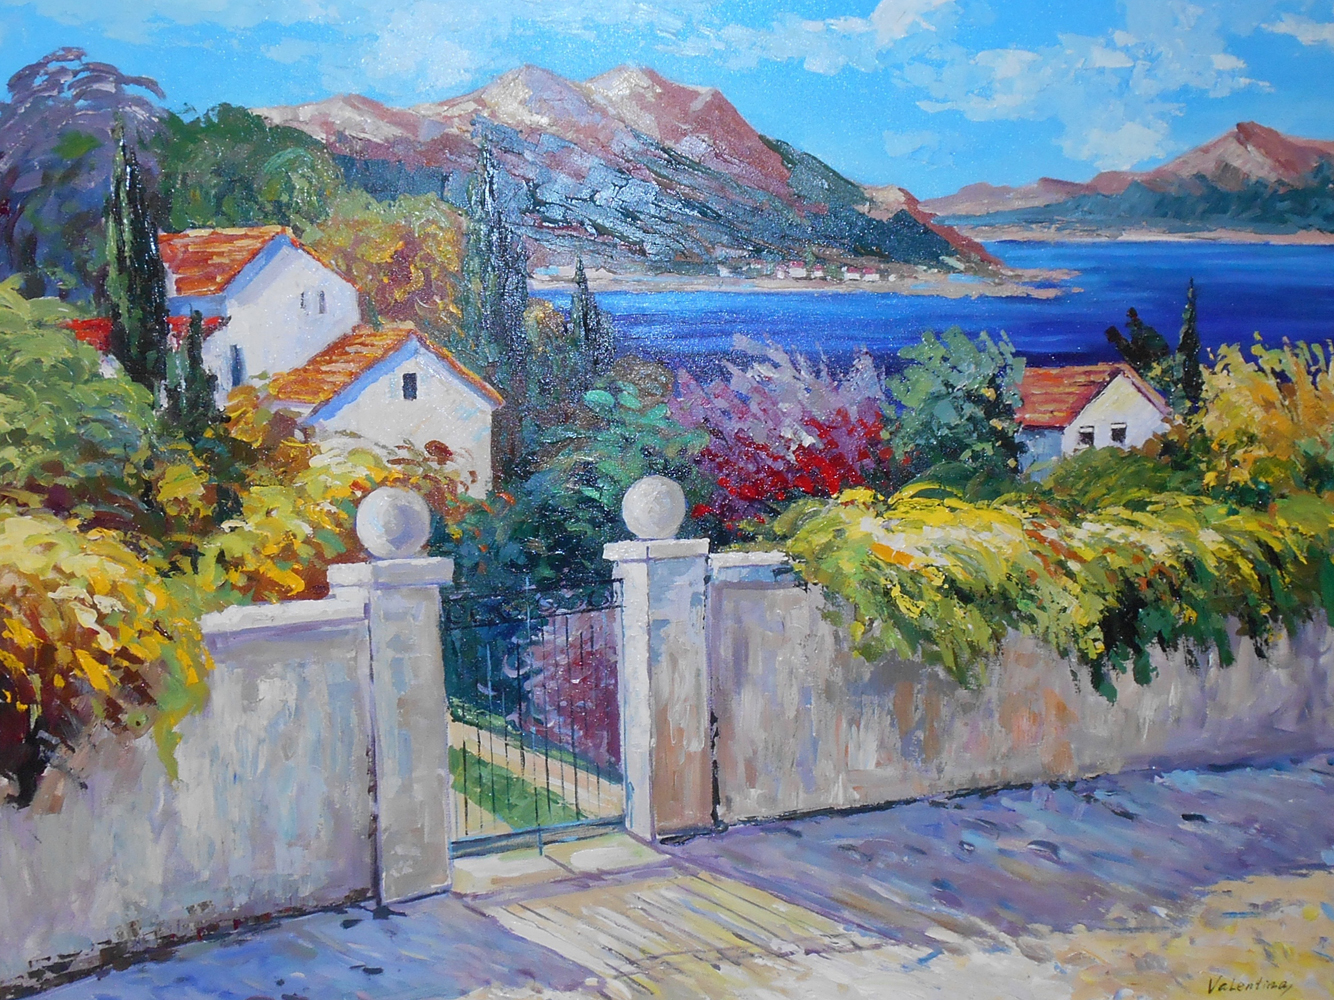 Coastal Landscape With Cottages And Garden Behind Gated Stone Wall 41x50